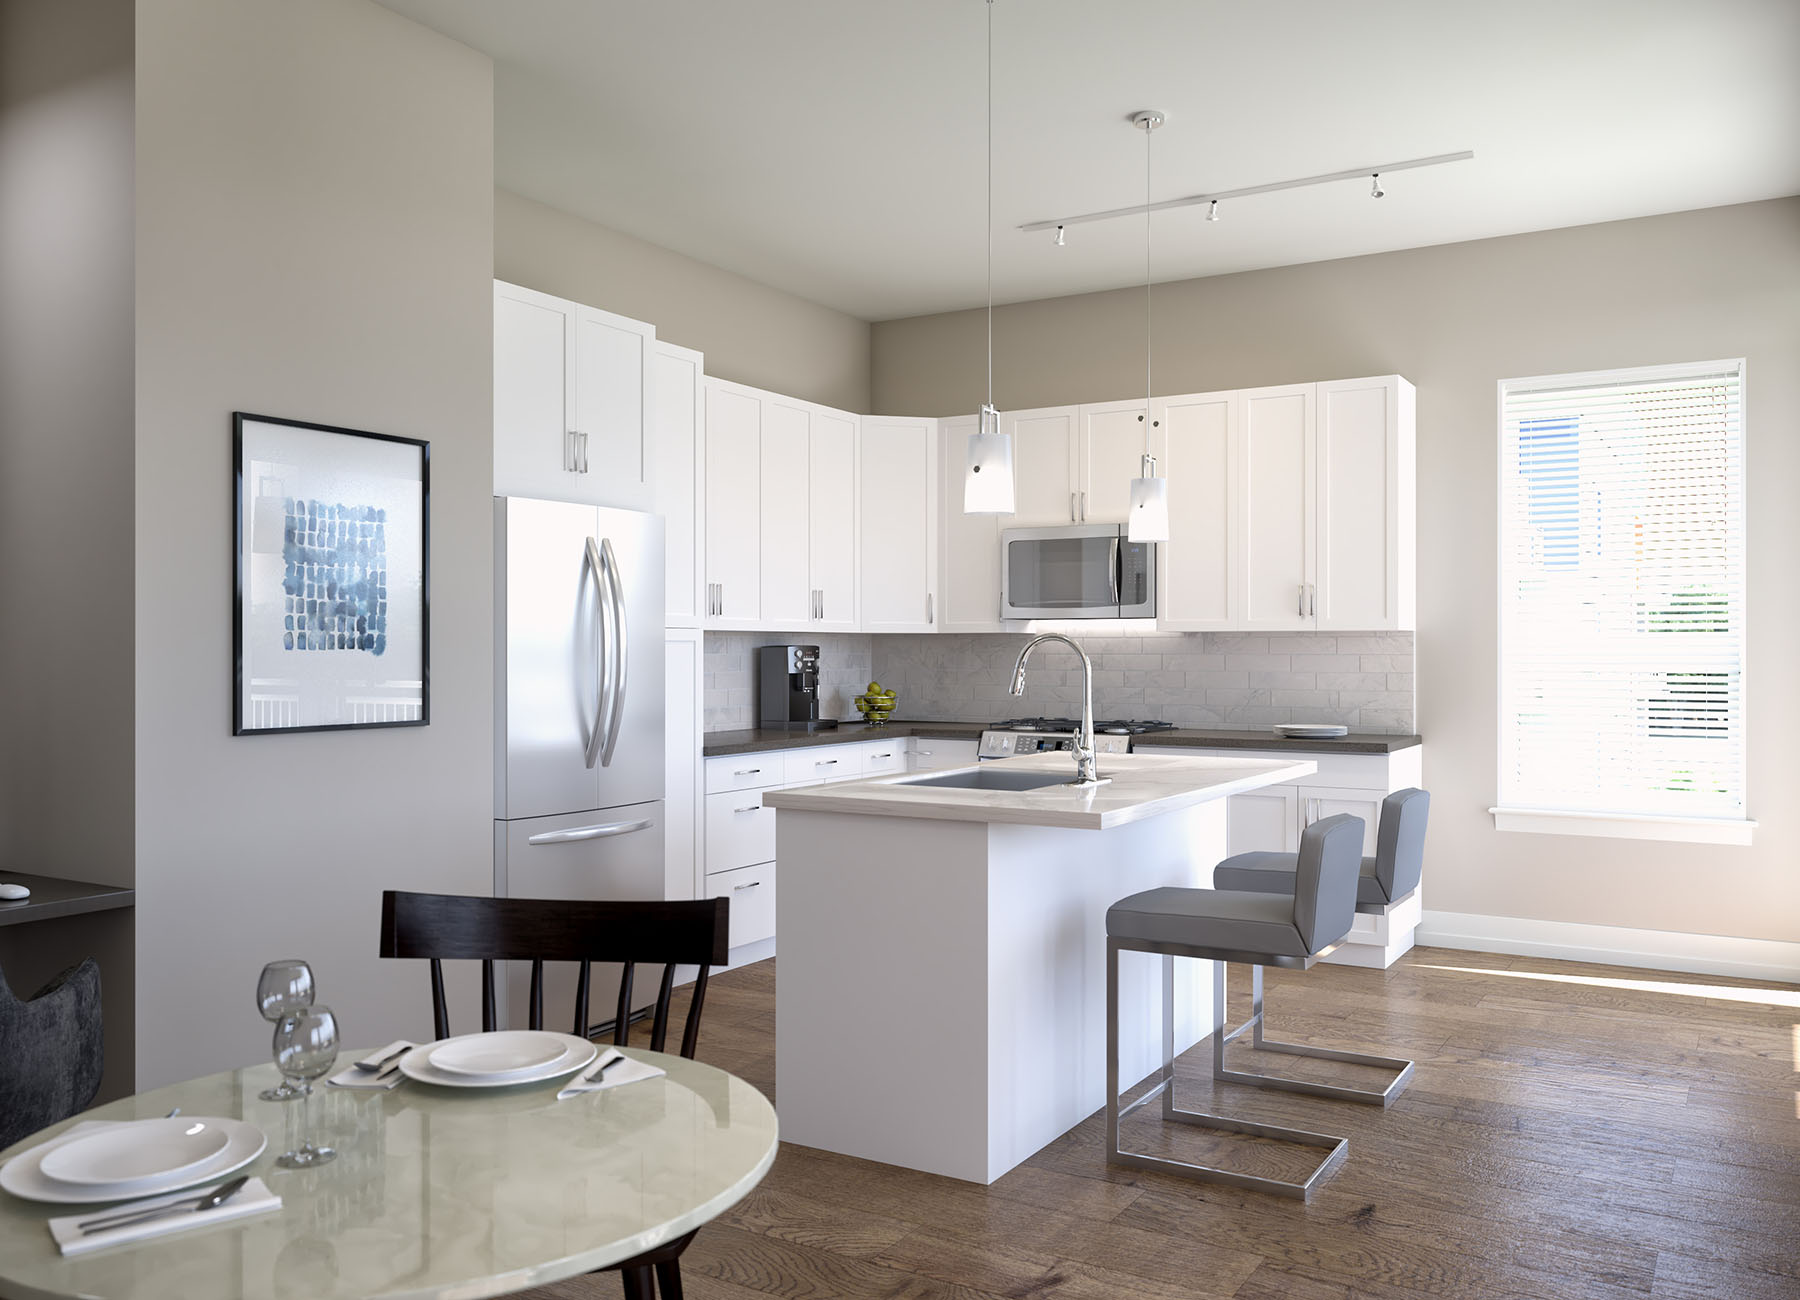 Rendering of a kitchen with granite countertops, island, and stainless steel applicances